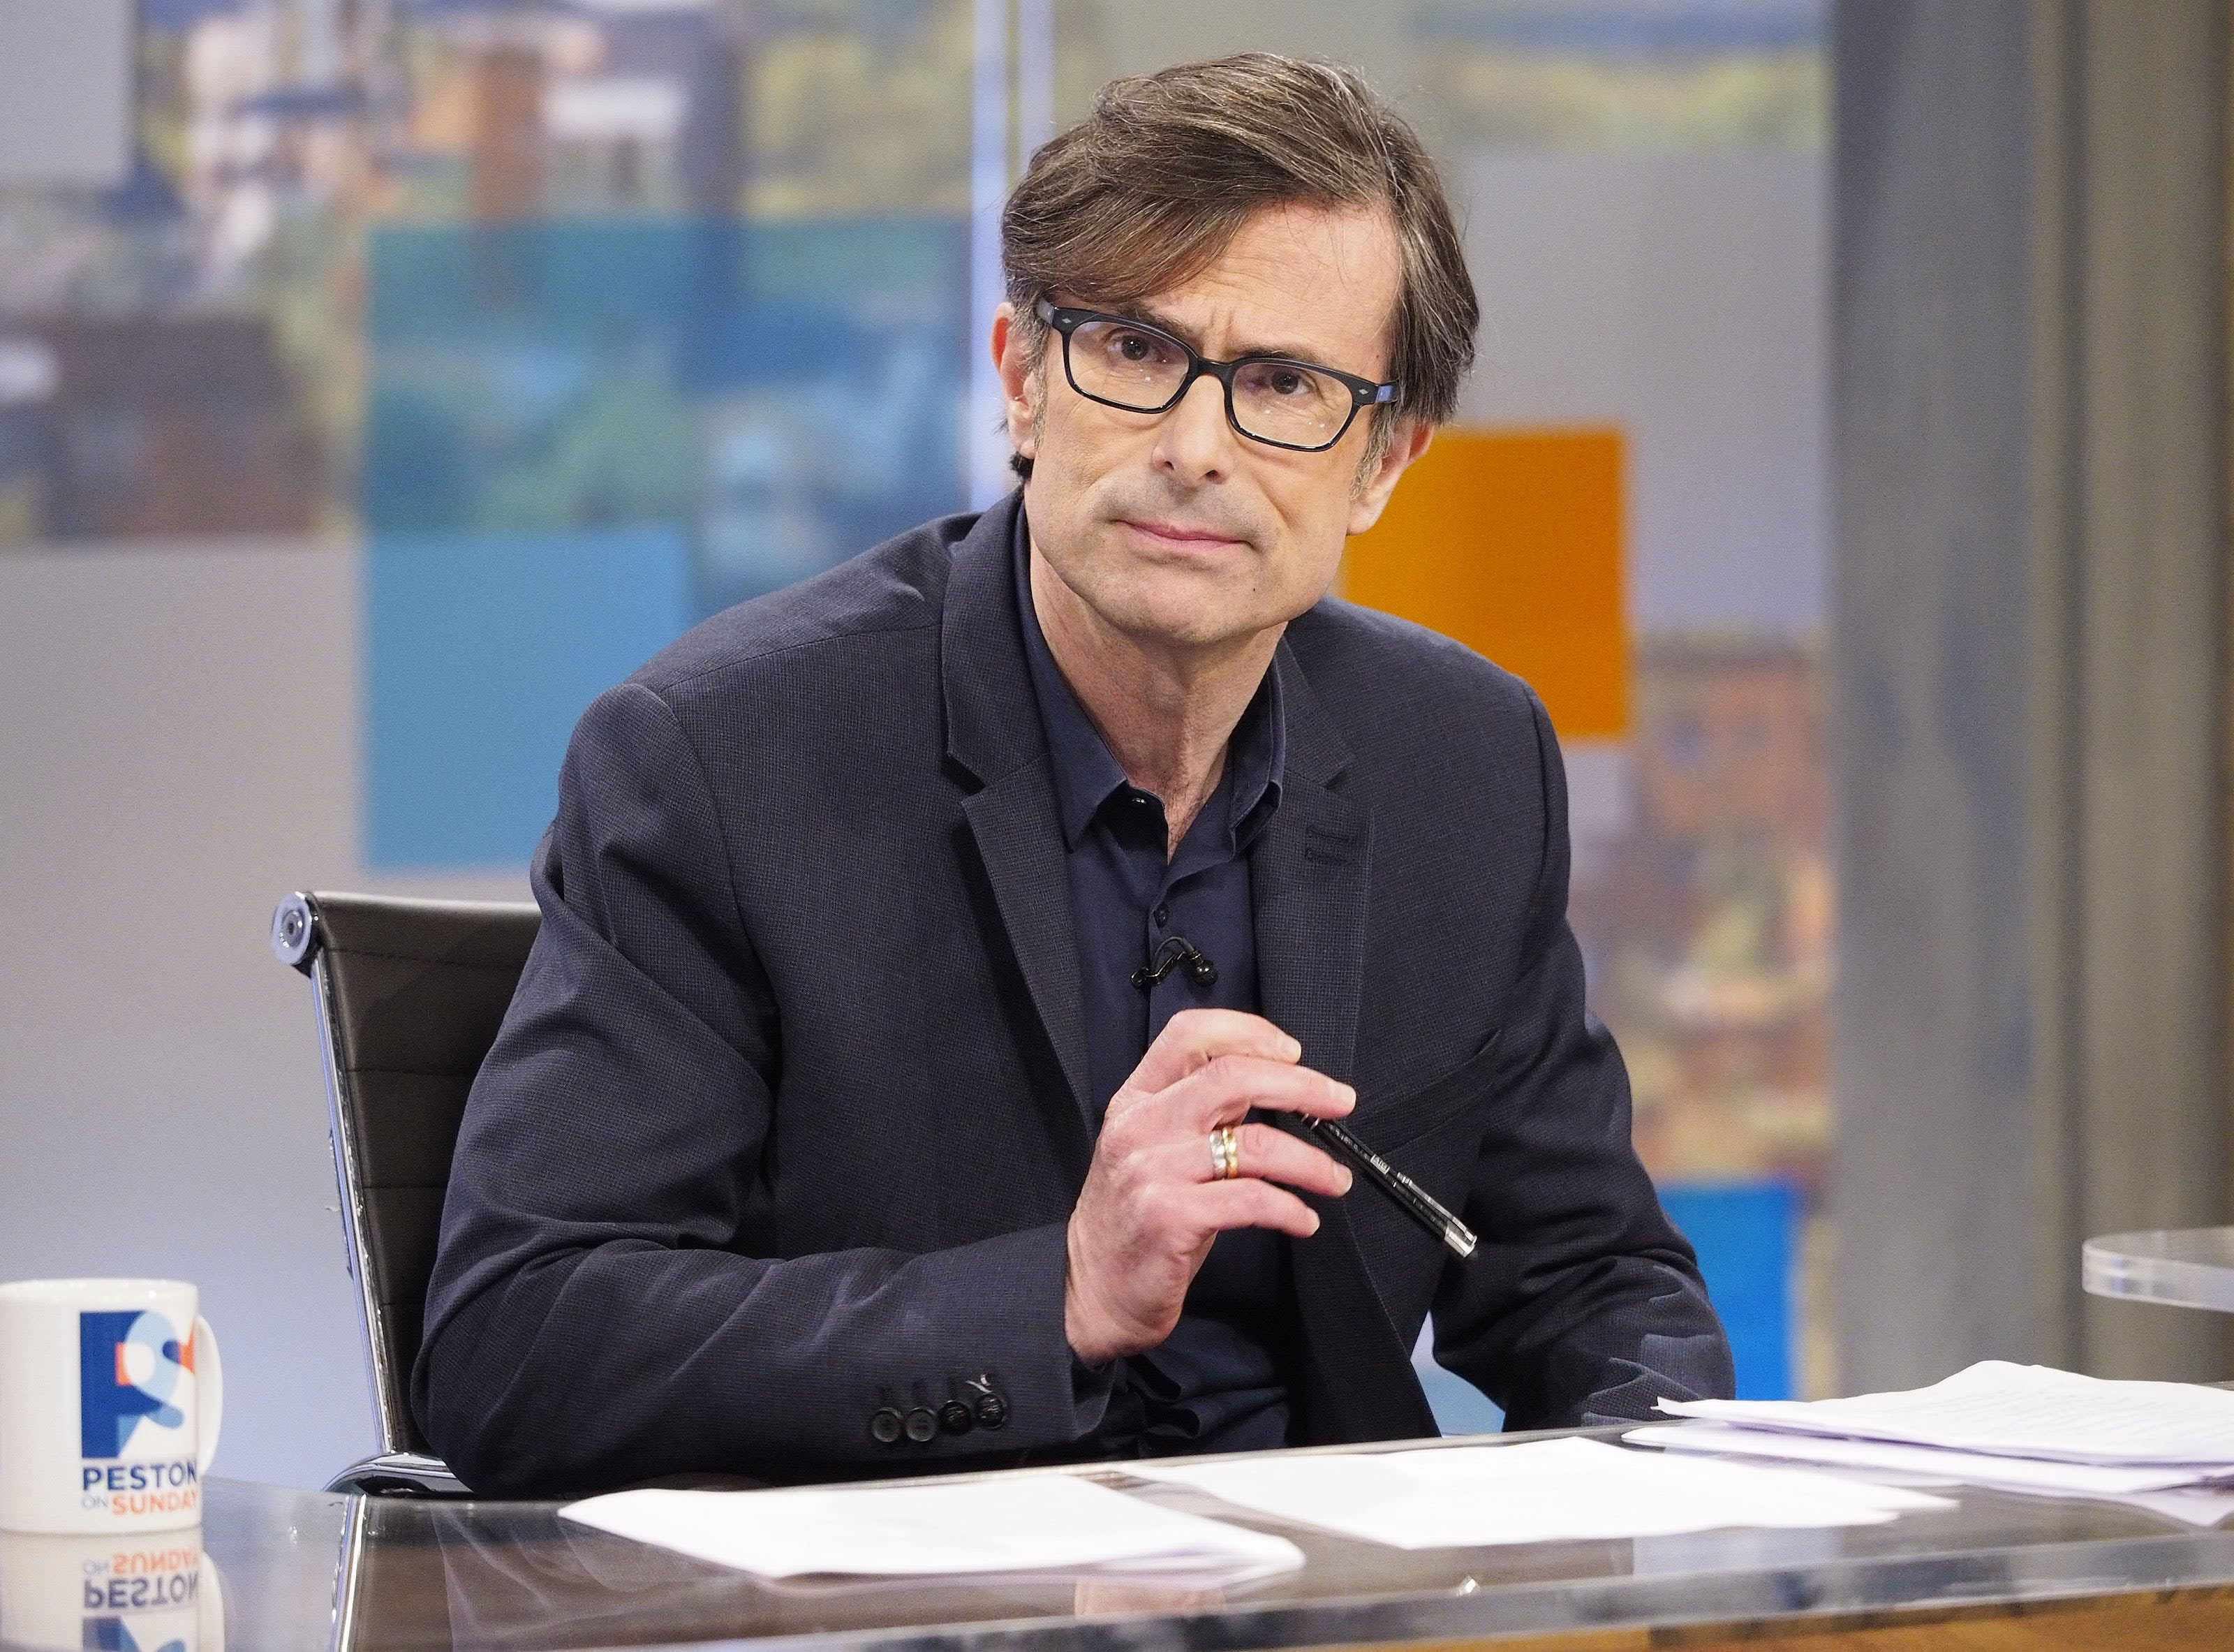 Peston on Sunday (ITV, EH)